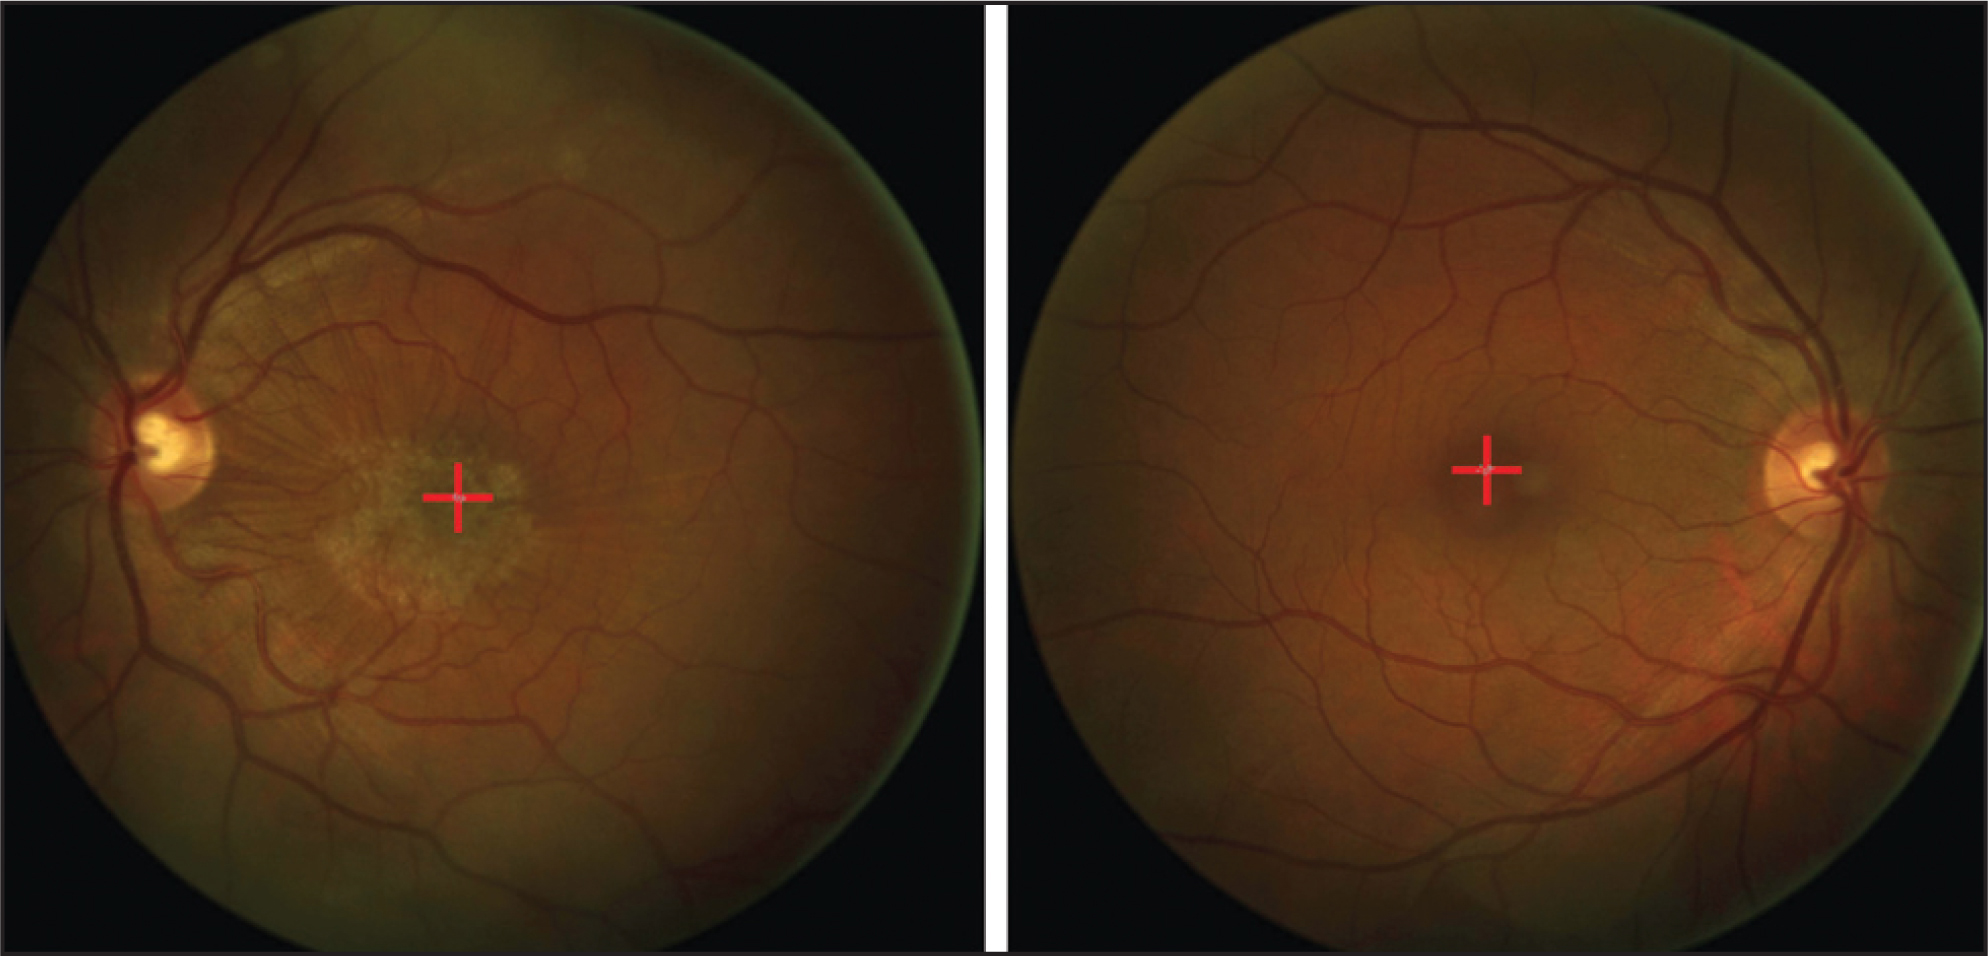 Fundus Photographs Of A Patient With Epiretinal Membrane In The Left Eye